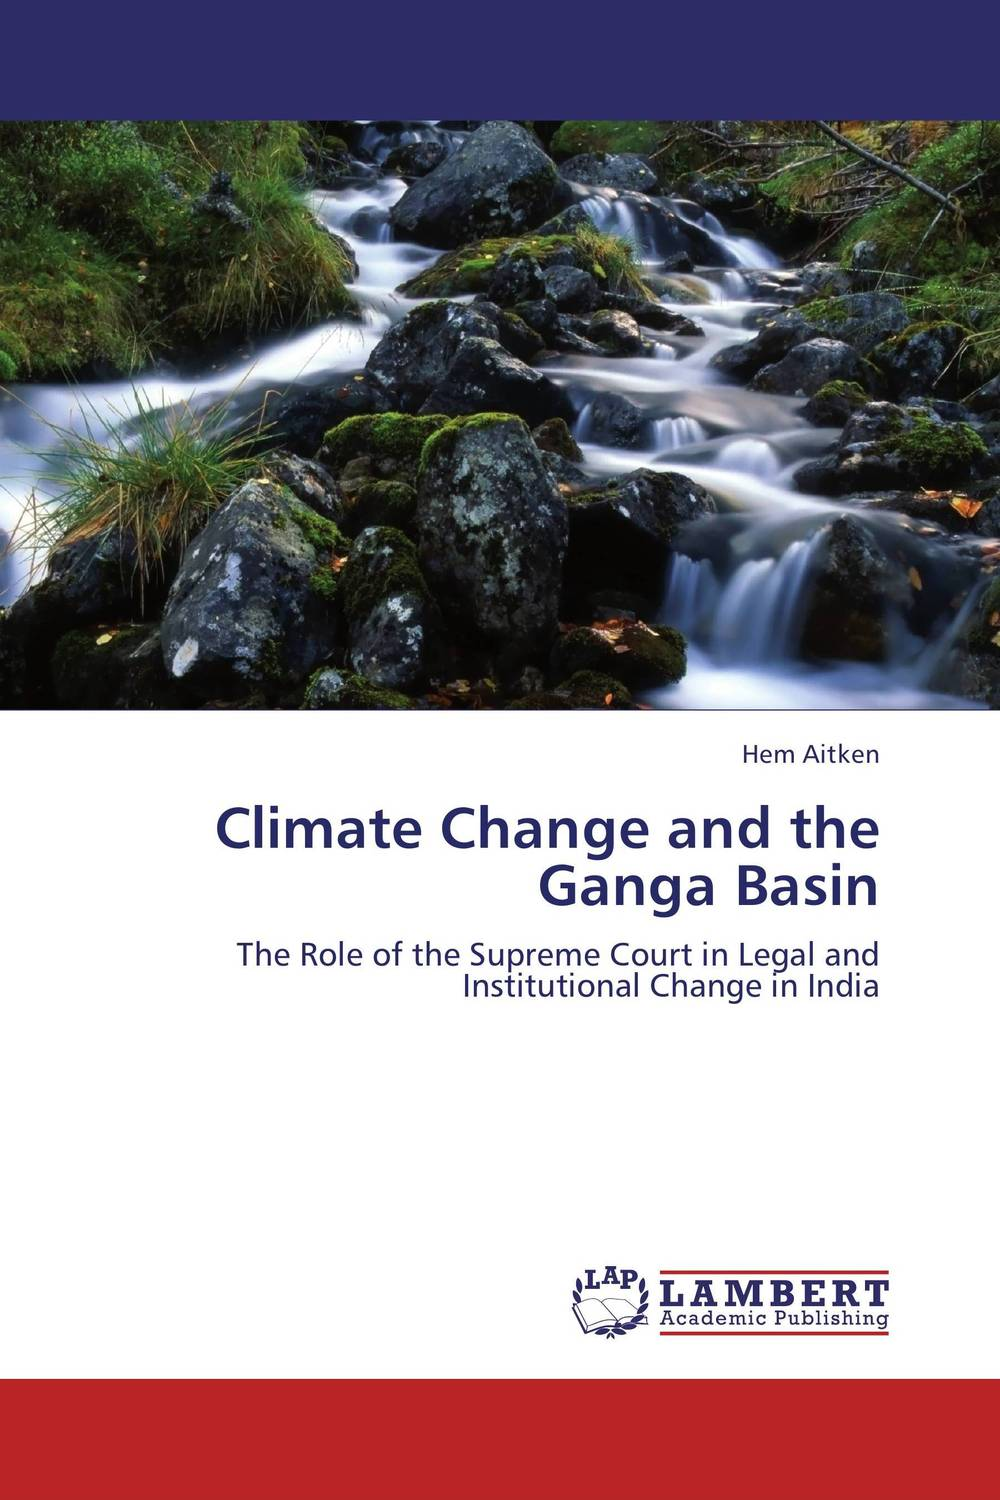 Climate Change and the Ganga Basin environmental protection in india role of supreme court